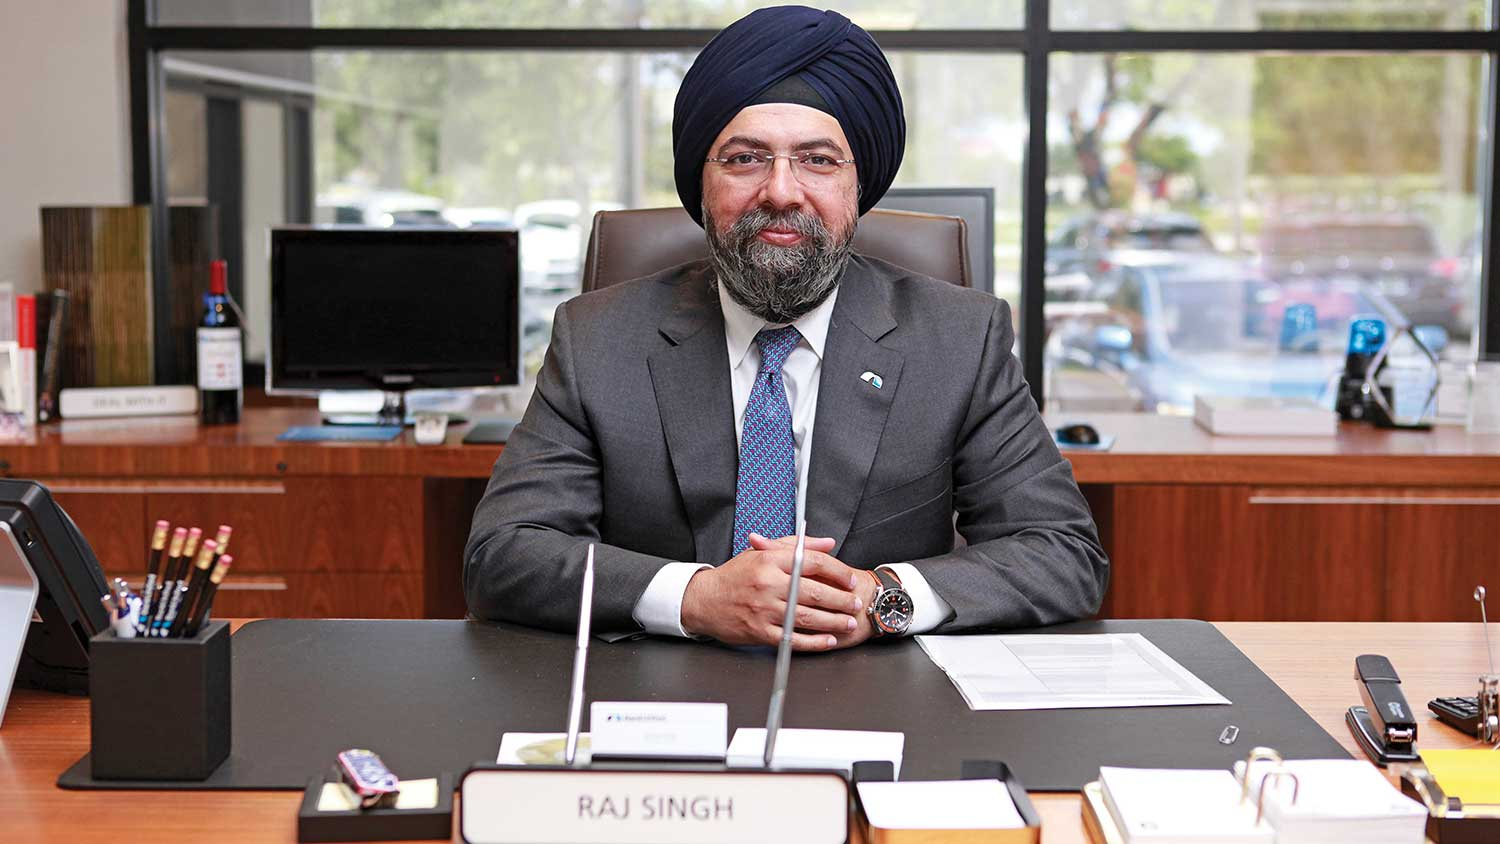 Raj Singh Grows BankUnited organically as a two-market bank